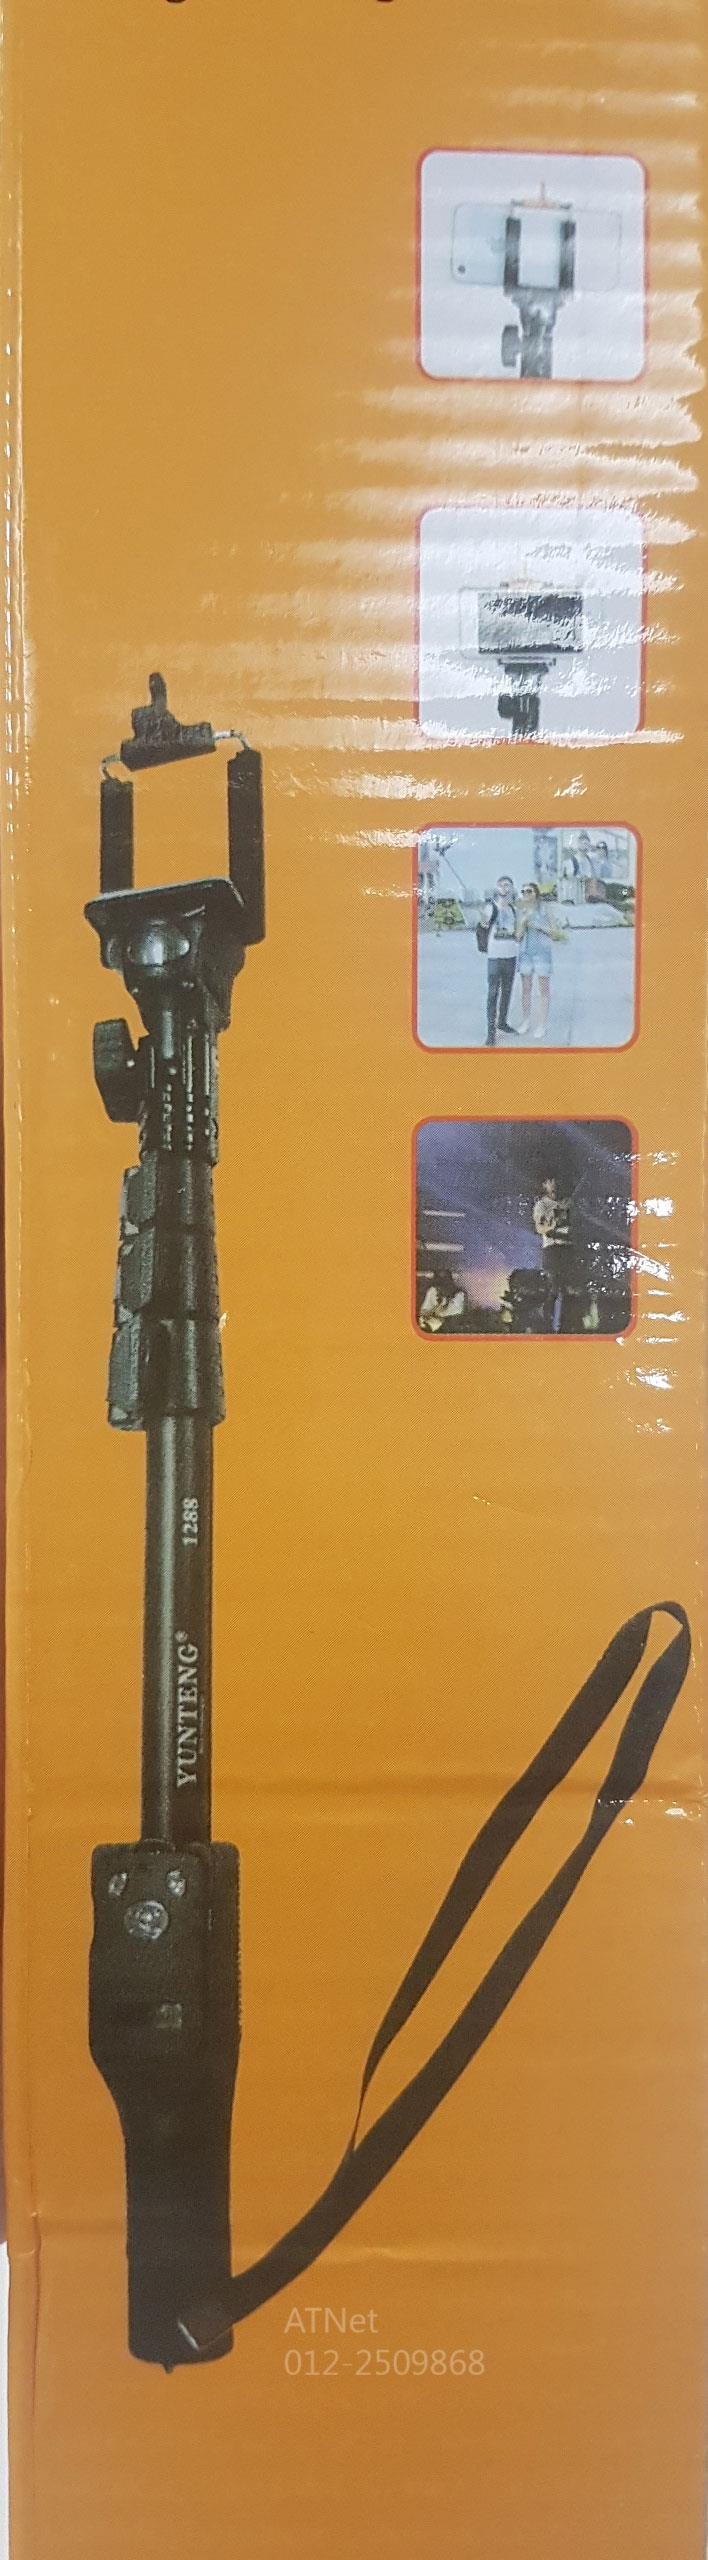 YUNTENG MONOPOD WITH REMOTE CONTROL YT-1288